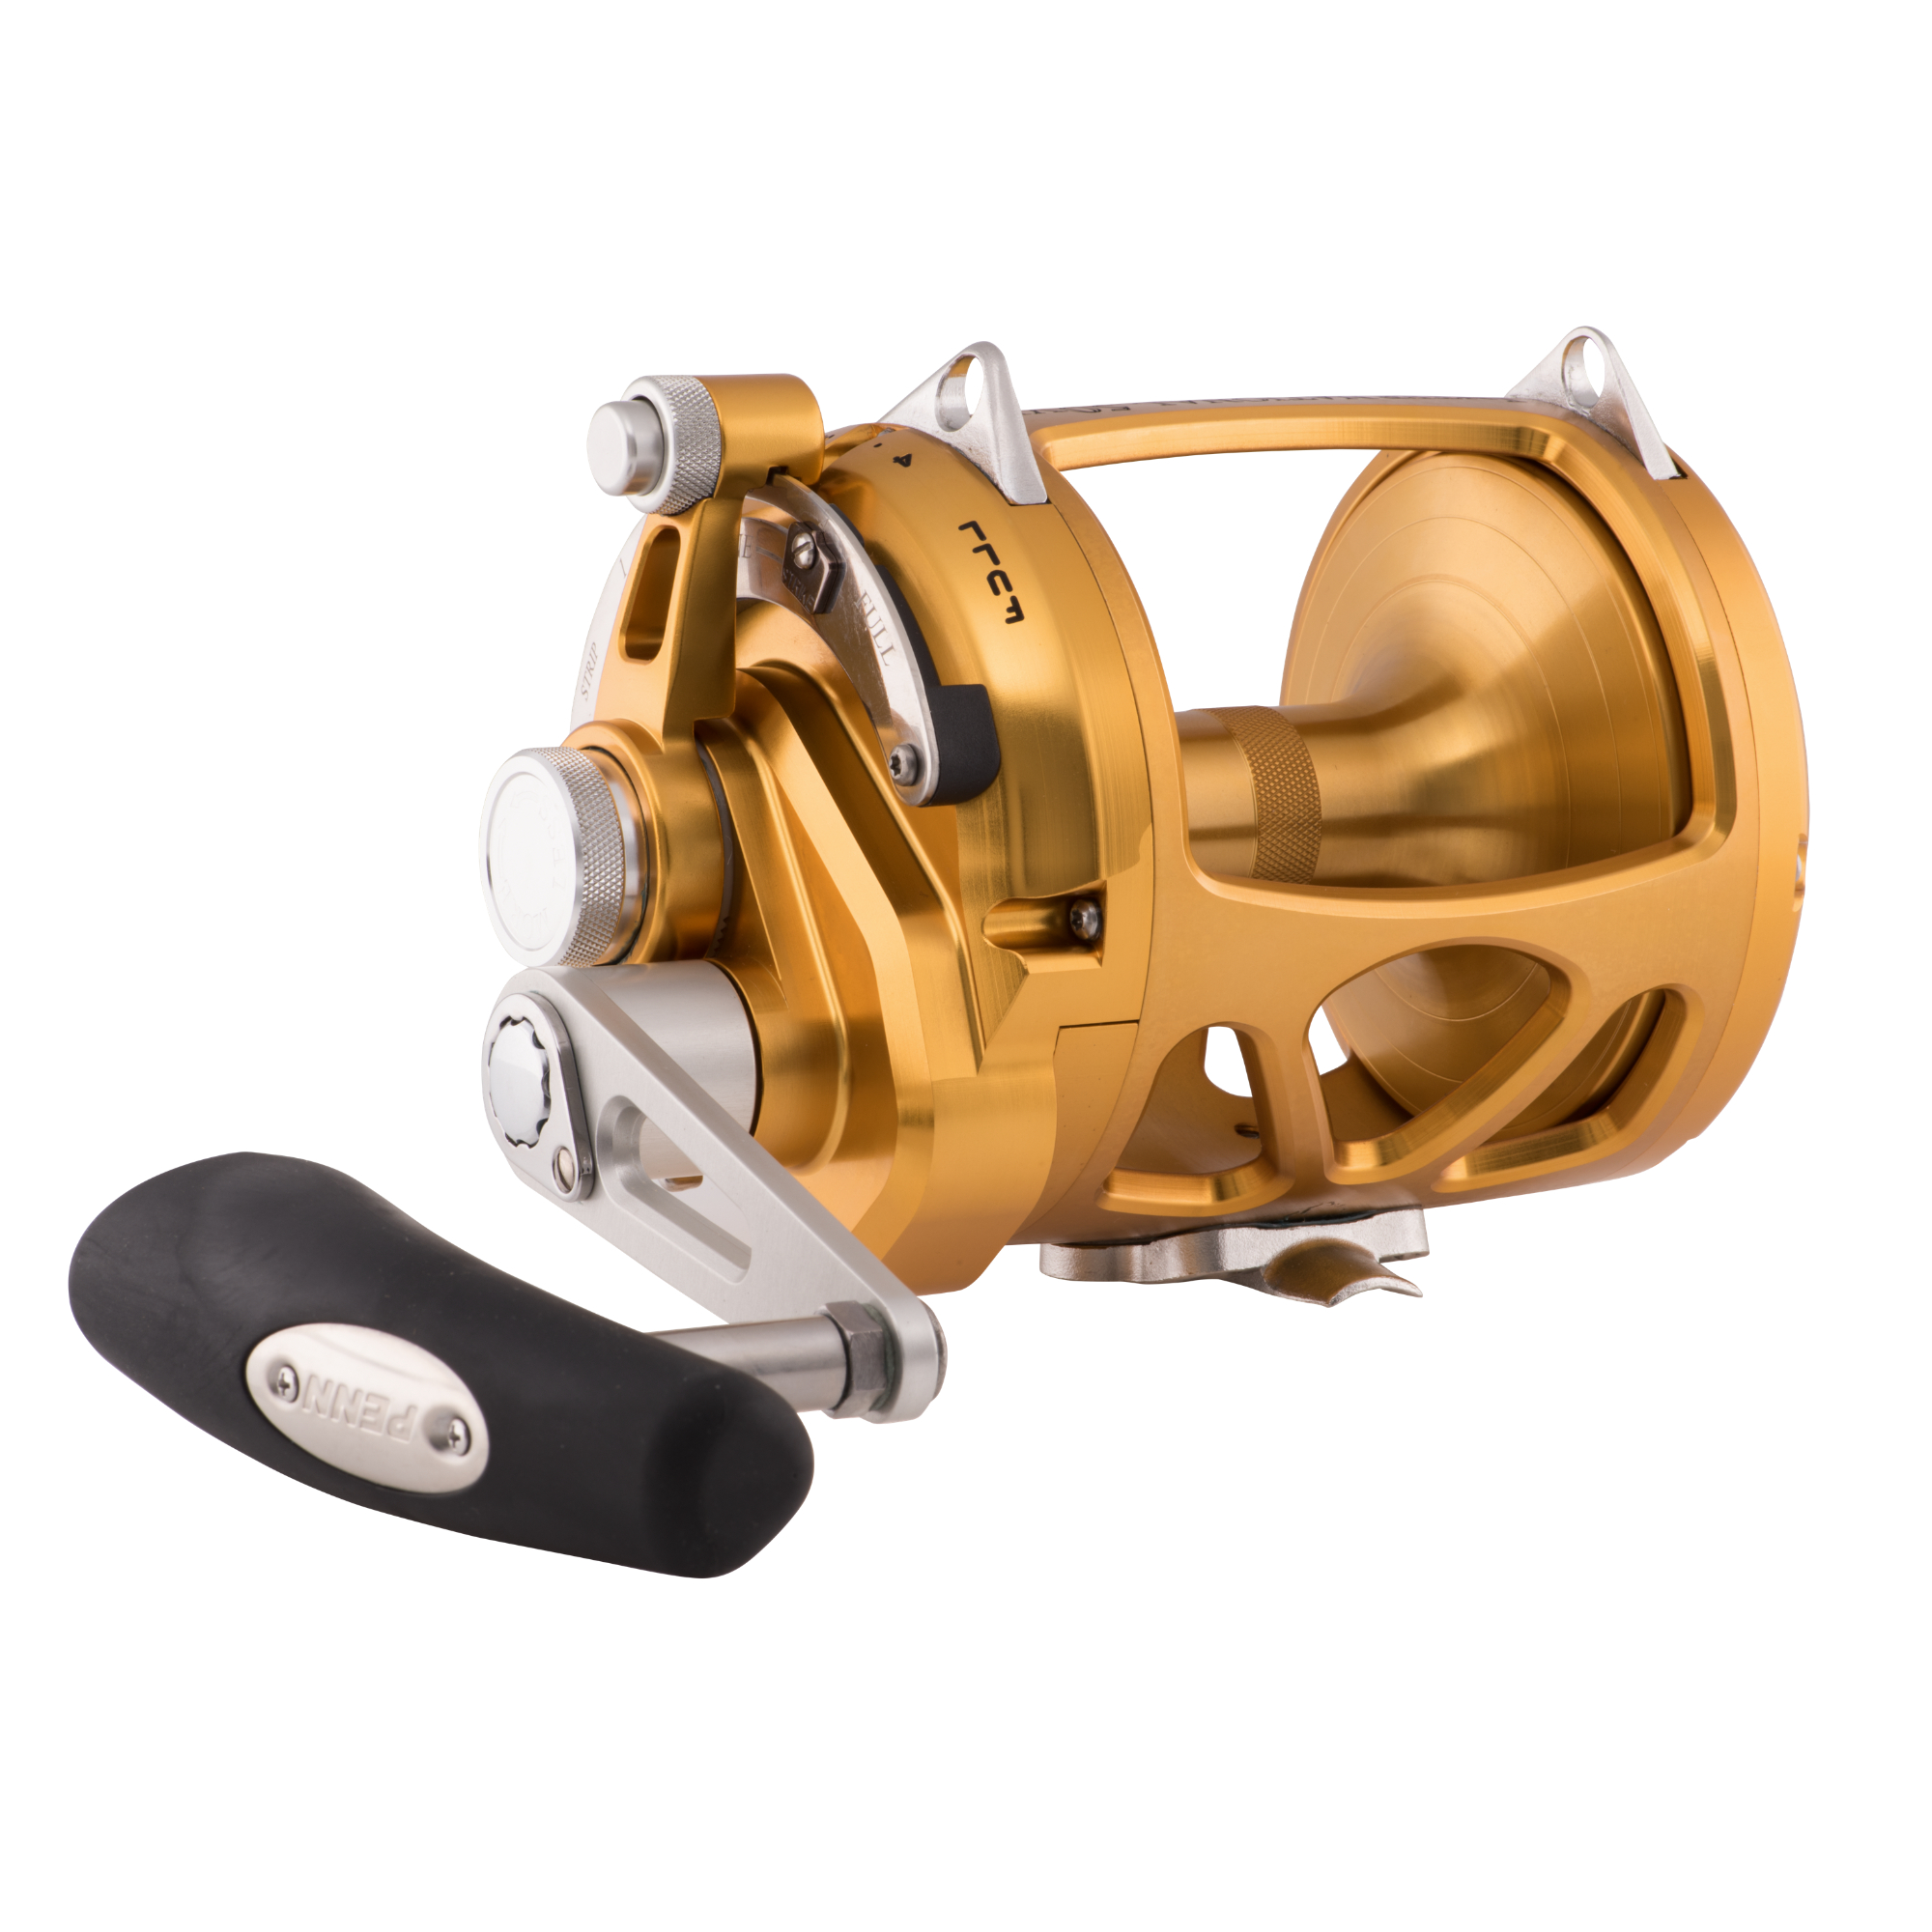 Penn INT50VIW International VI Reel